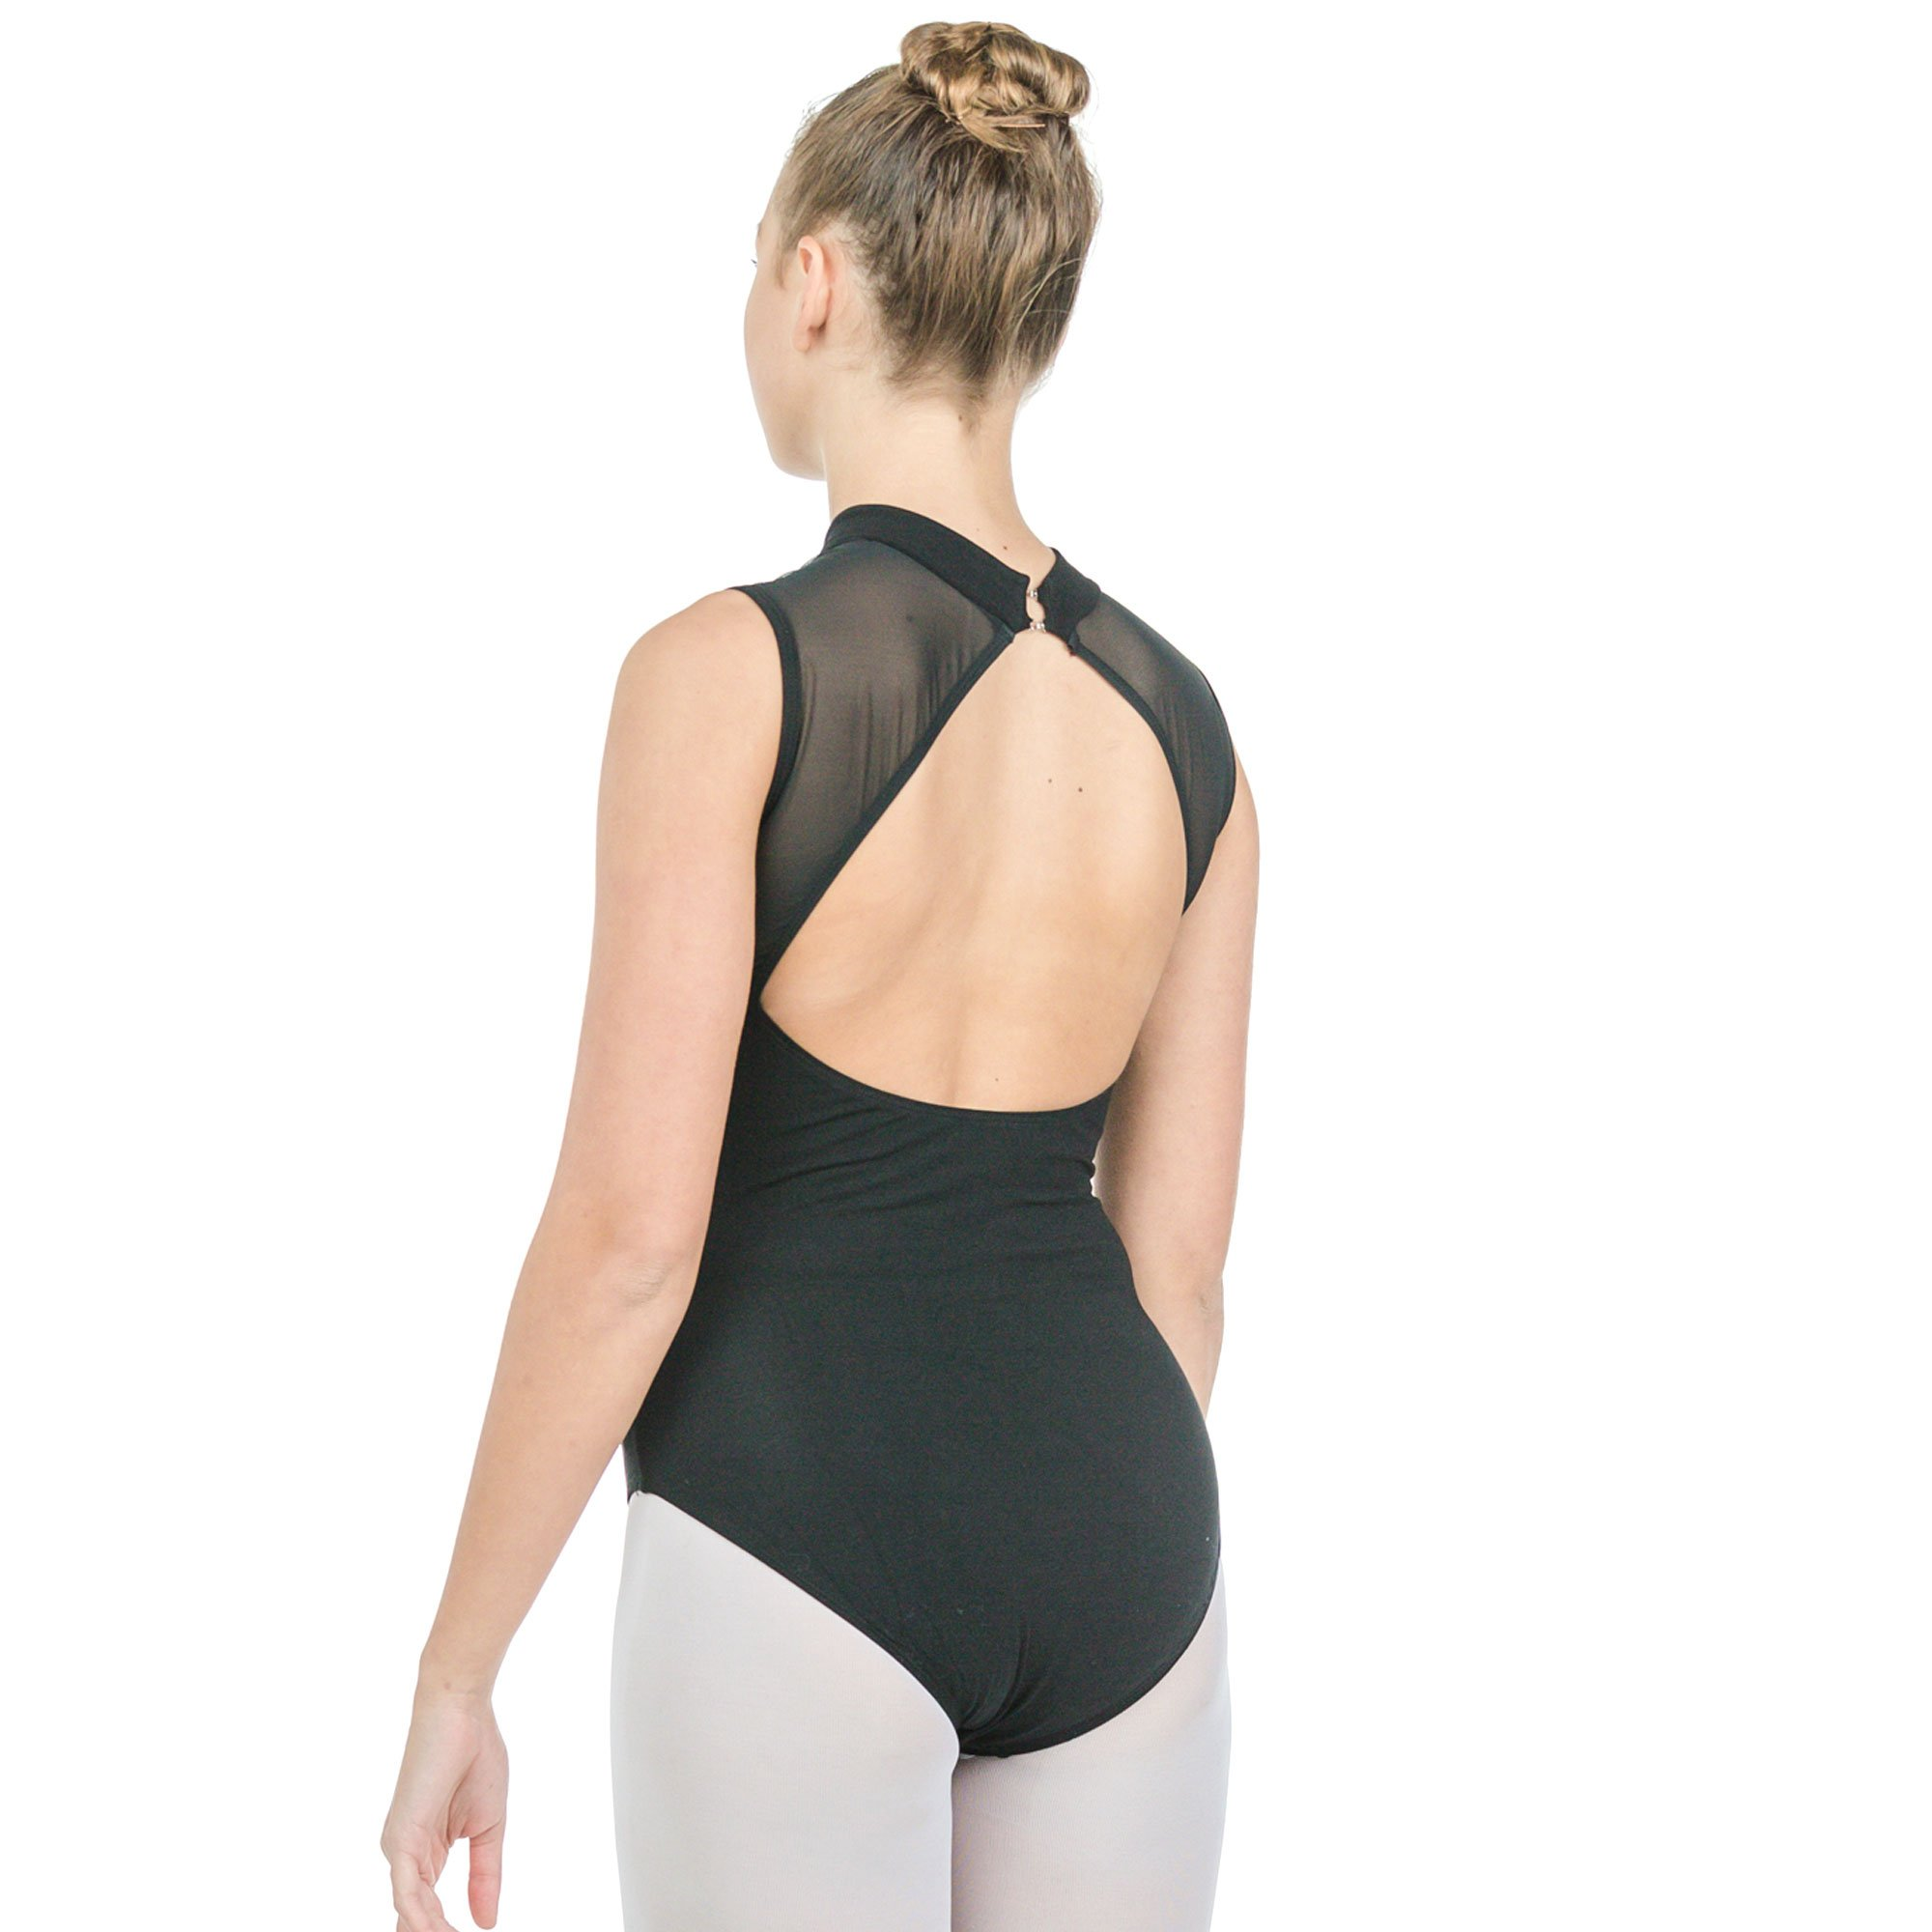 Baiwu Adult Sleeveless Mesh Open Back Leotard